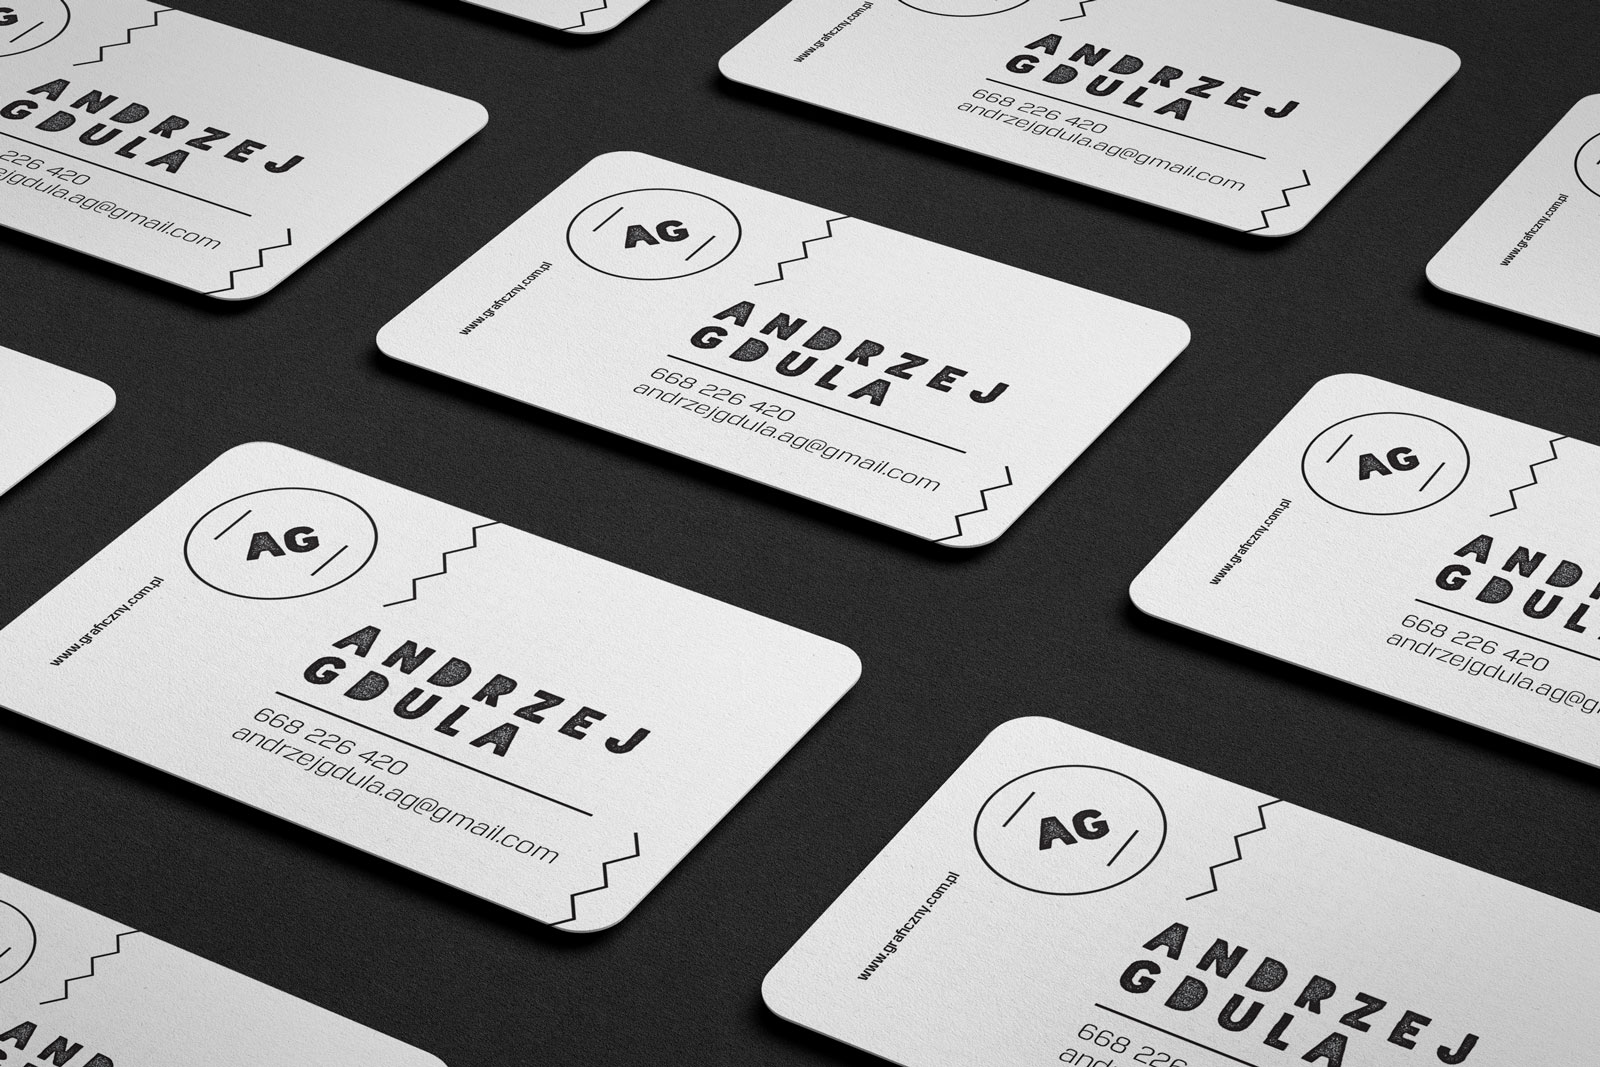 Free rounded corner business card mockup psd good mockups free rounded corner business card mockup psd reheart